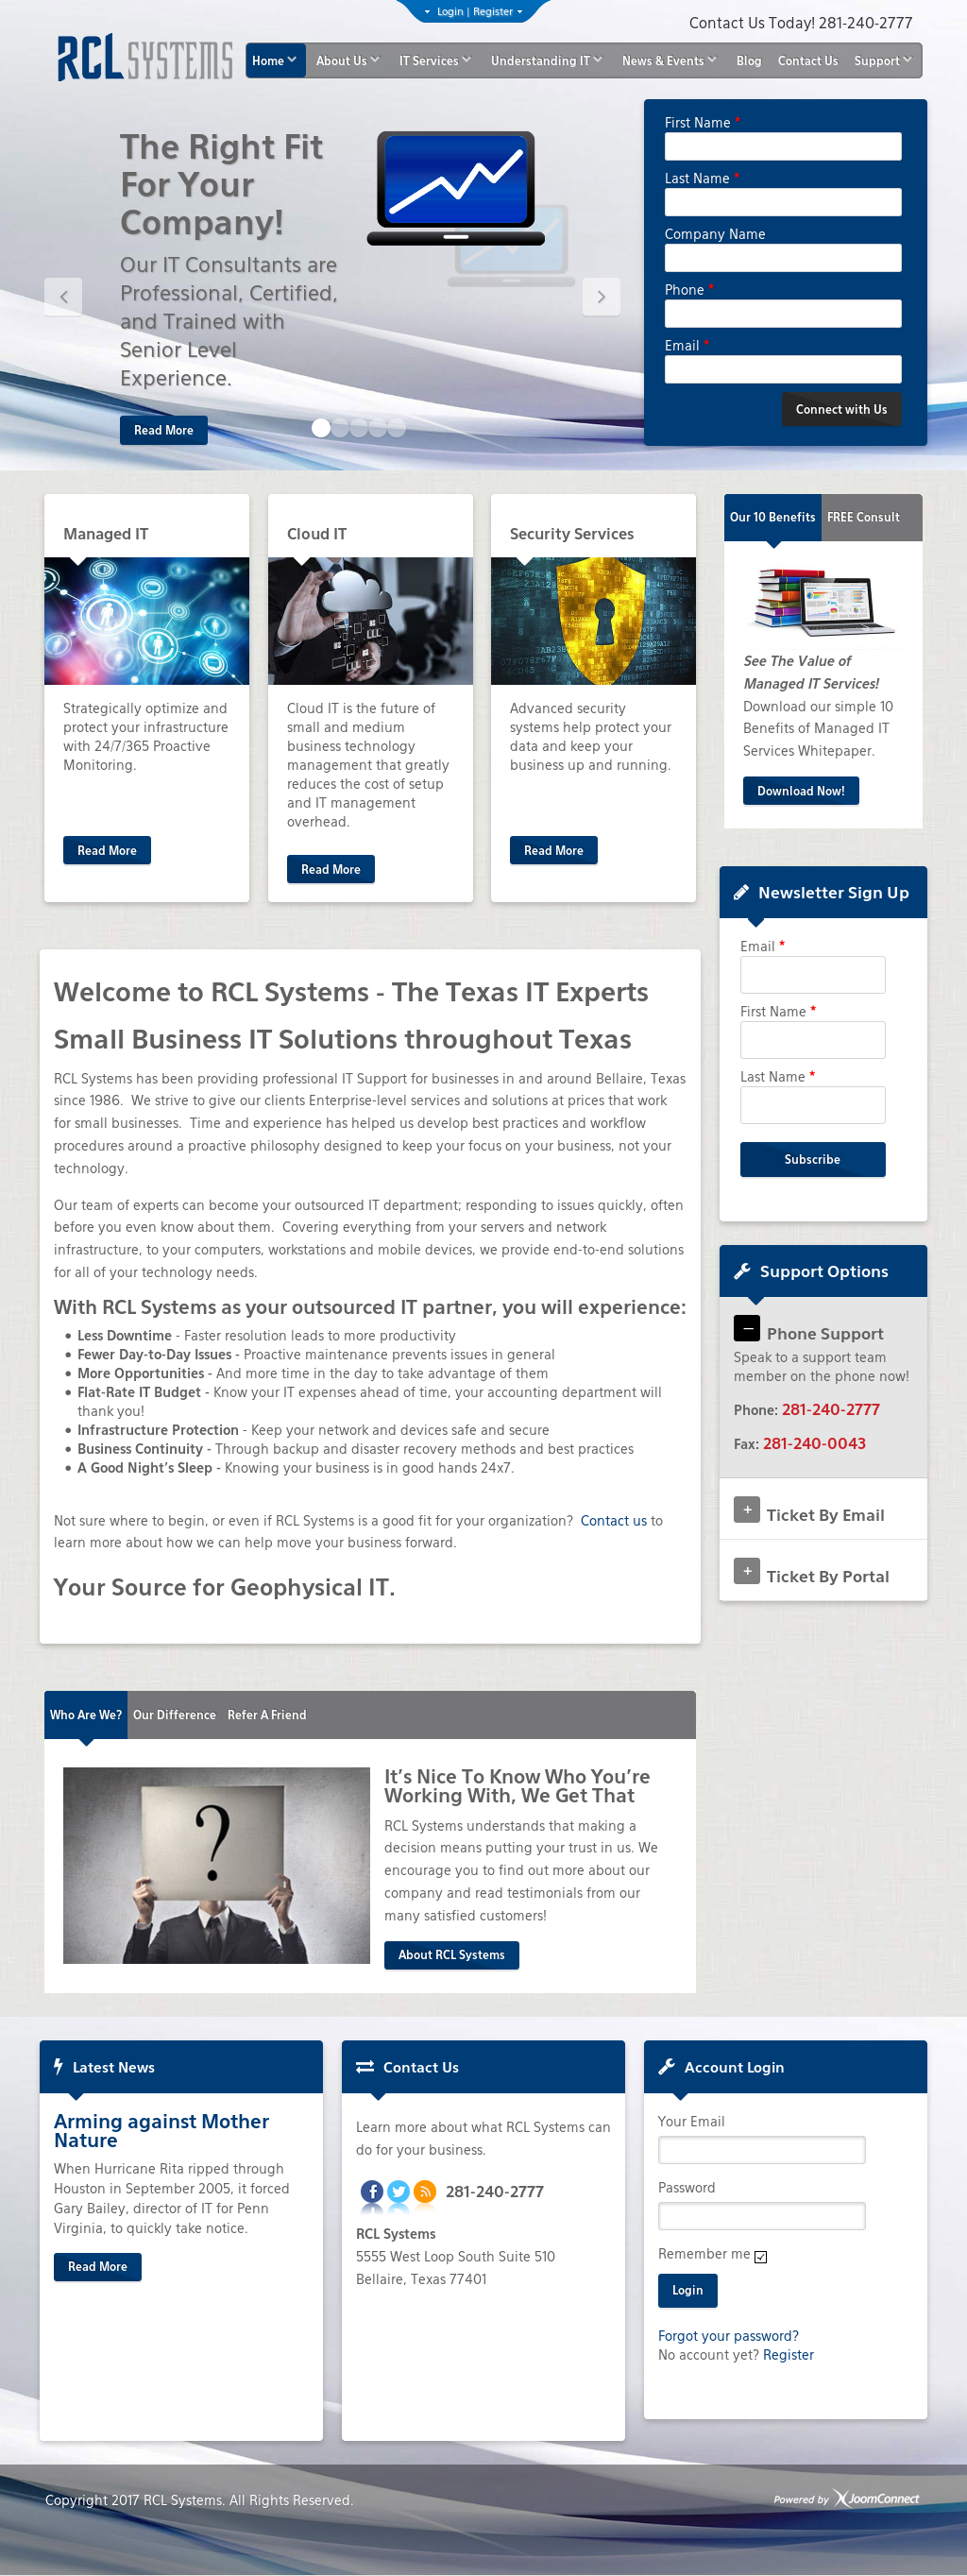 RCL Systems Competitors, Revenue and Employees - Owler Company Profile